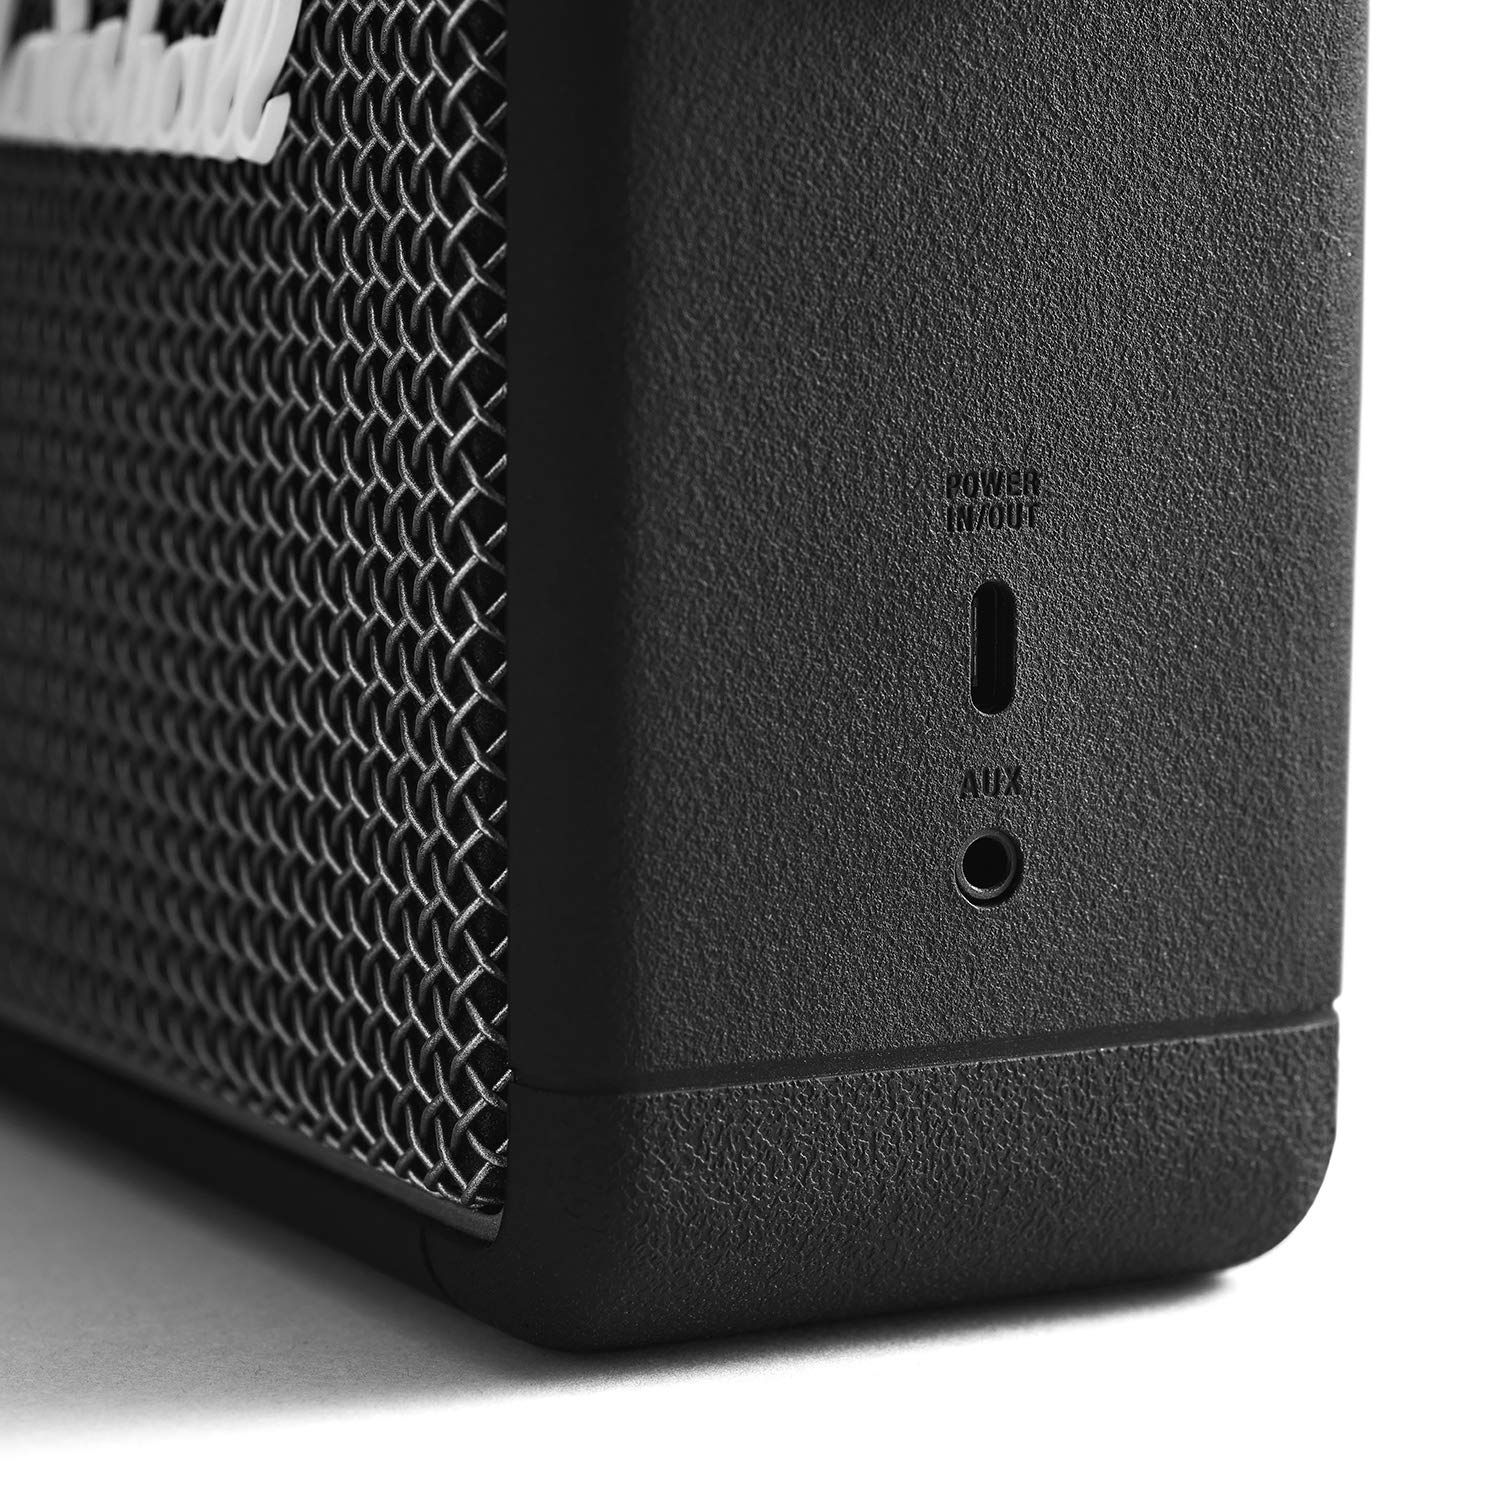 Open-Box & Unused Marshall Stockwell II Portable Bluetooth Speaker (Black) kida.in